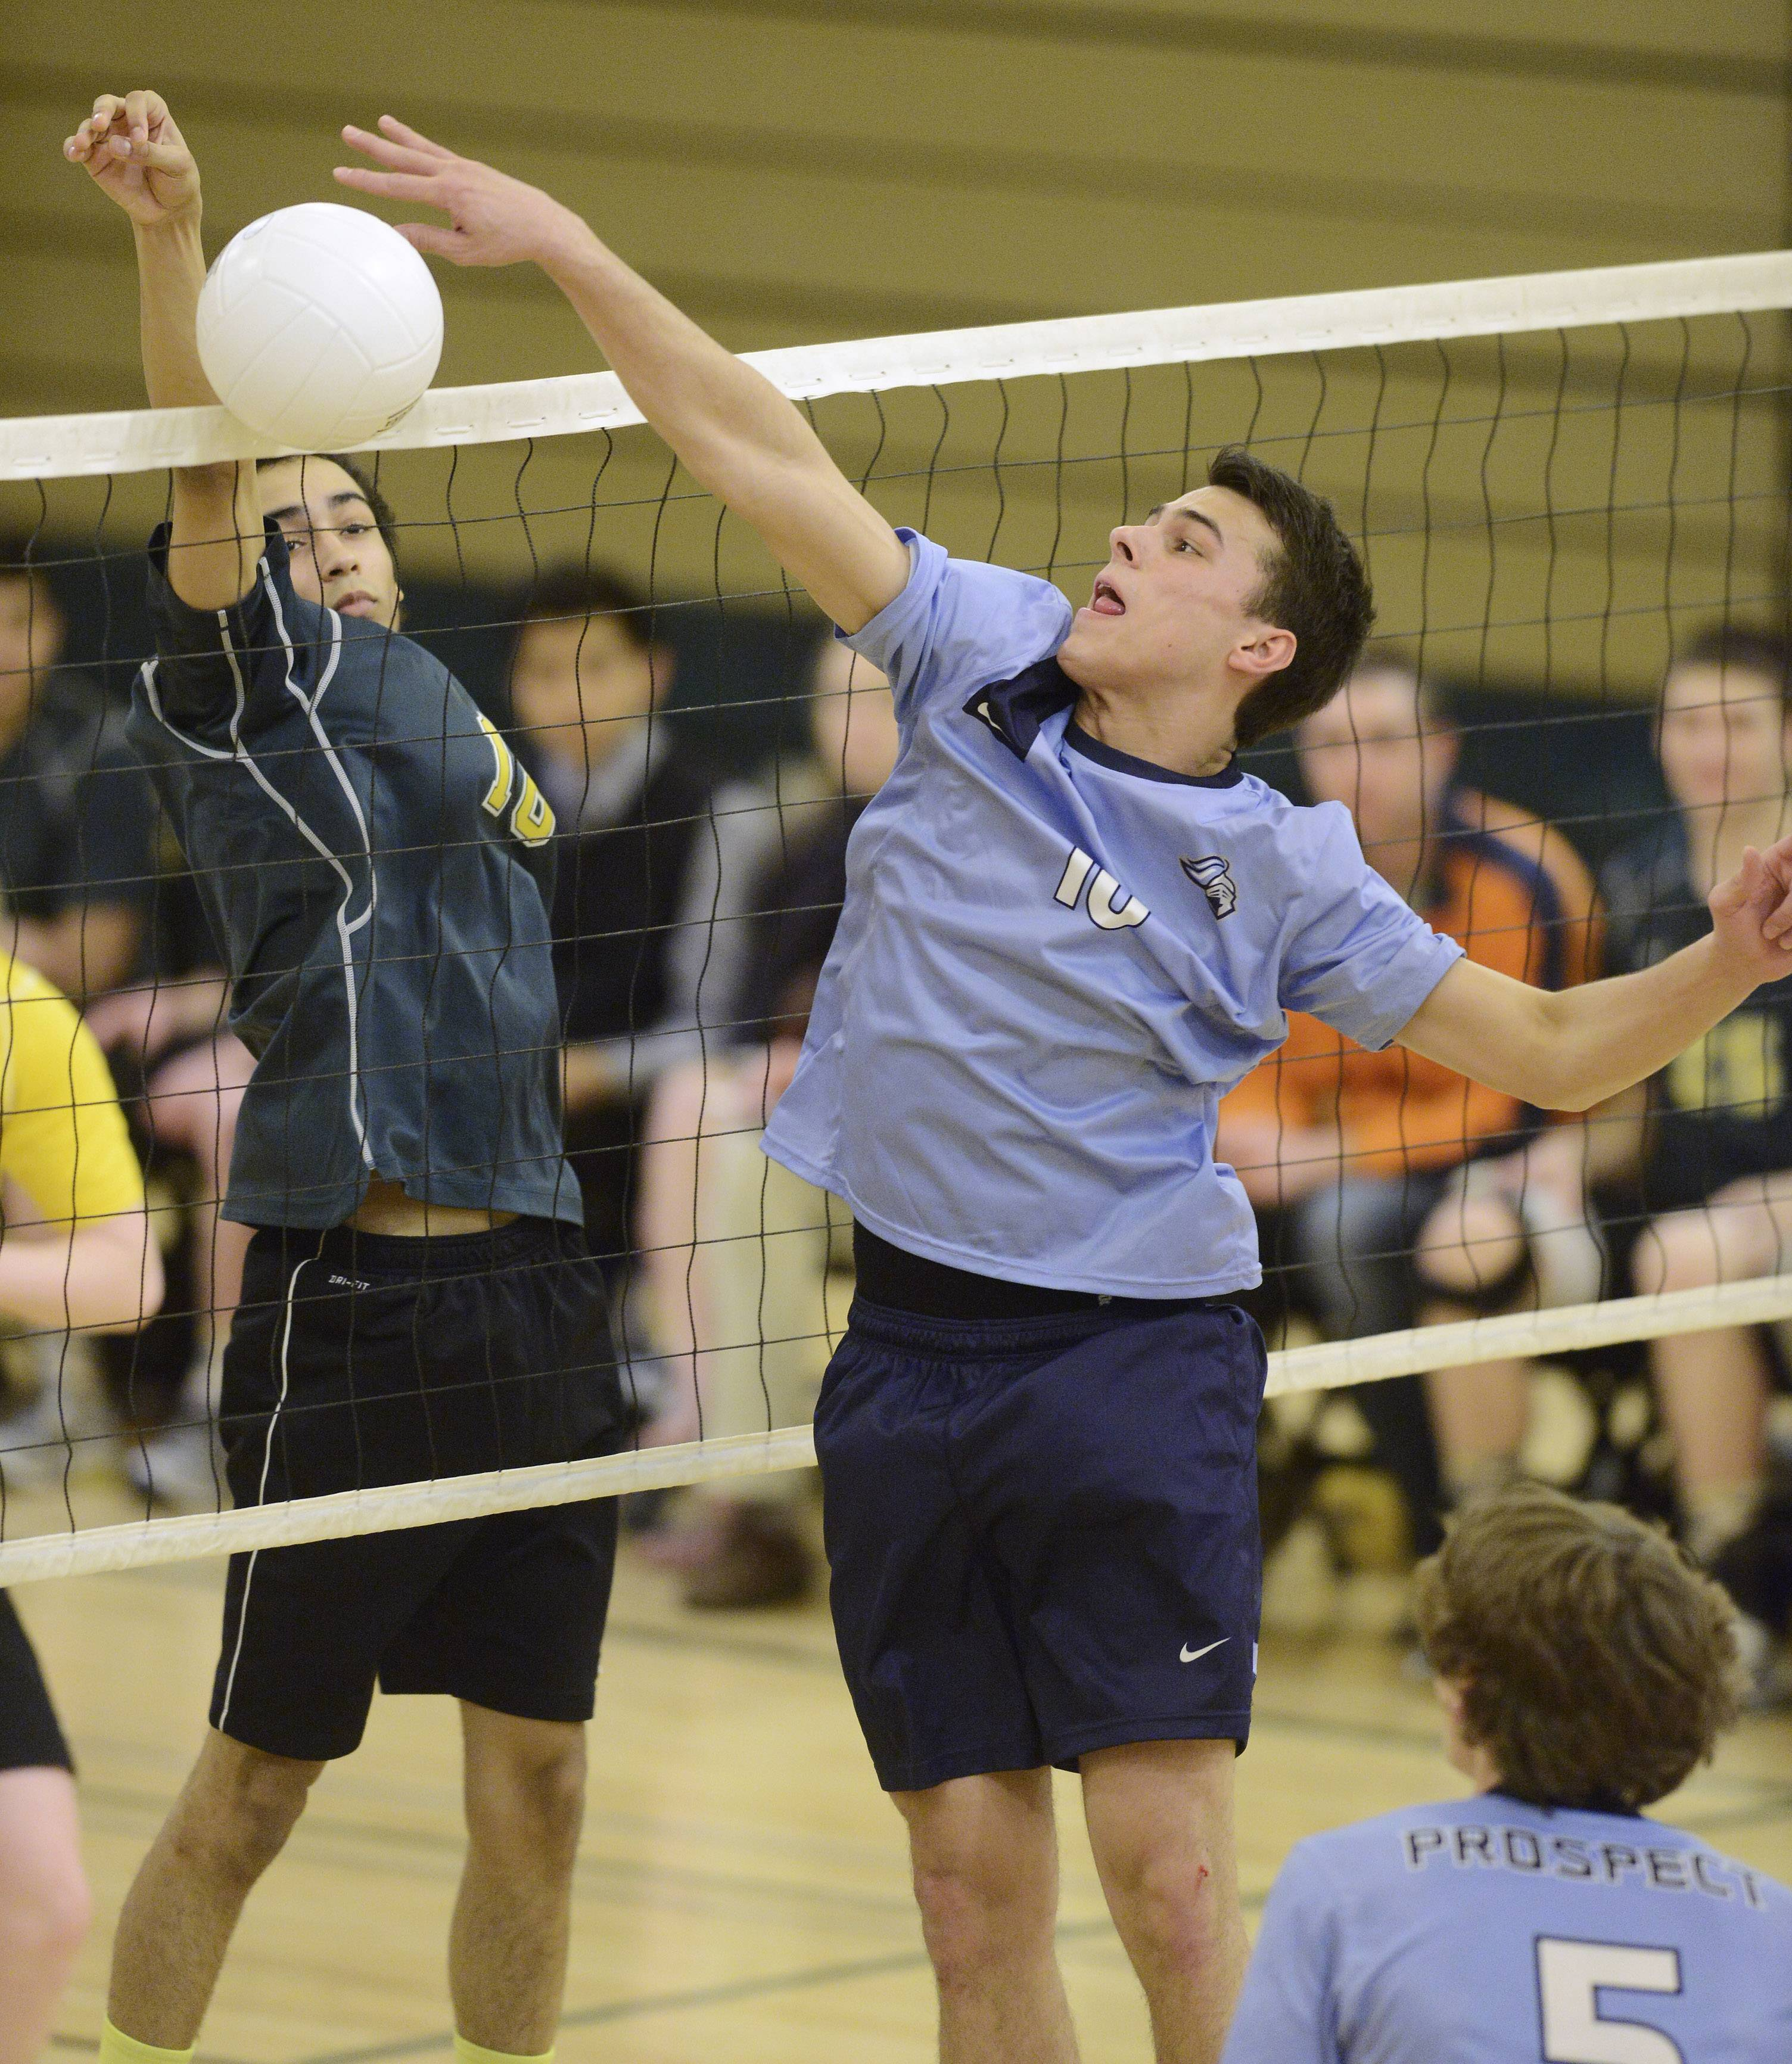 Prospect's Jacob Schwister, right, tries to tap the ball over the net in front of Elk Grove's Justin Jimenez on Tuesday.